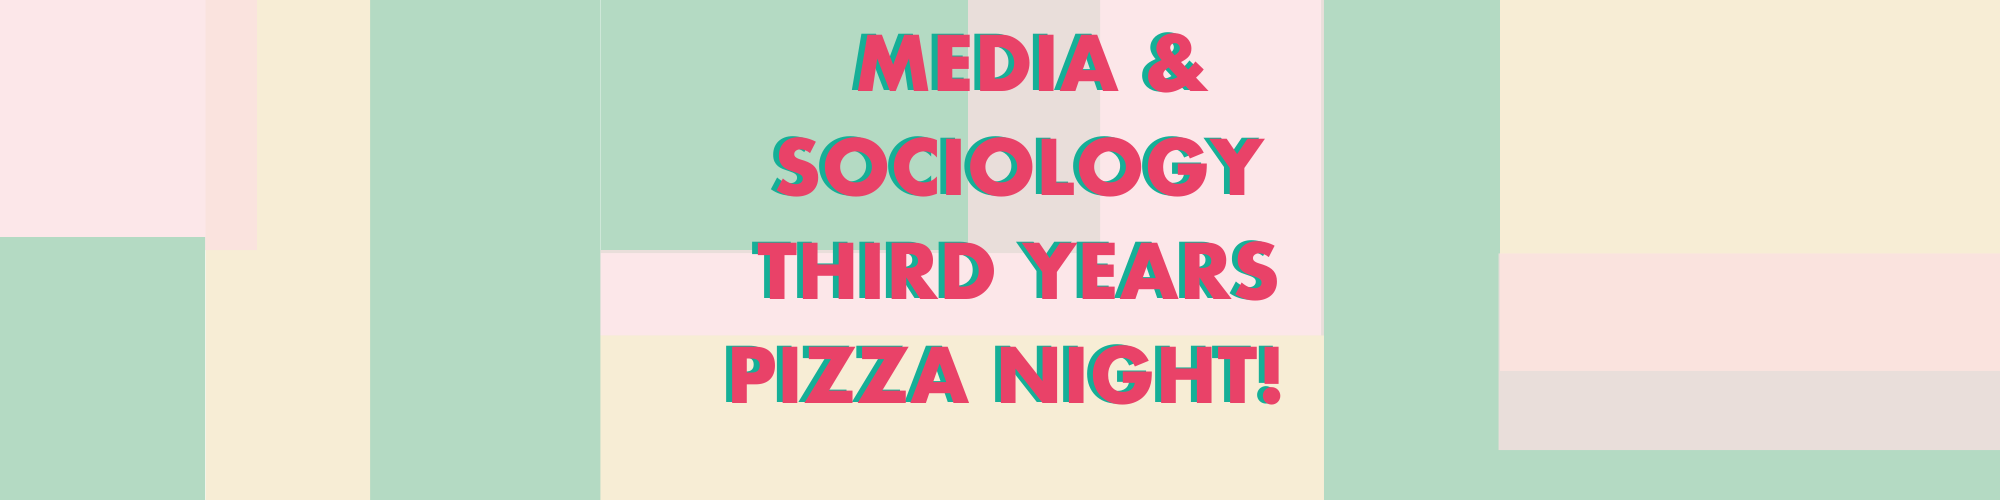 Media and Sociology 3rd Year Pizza Night